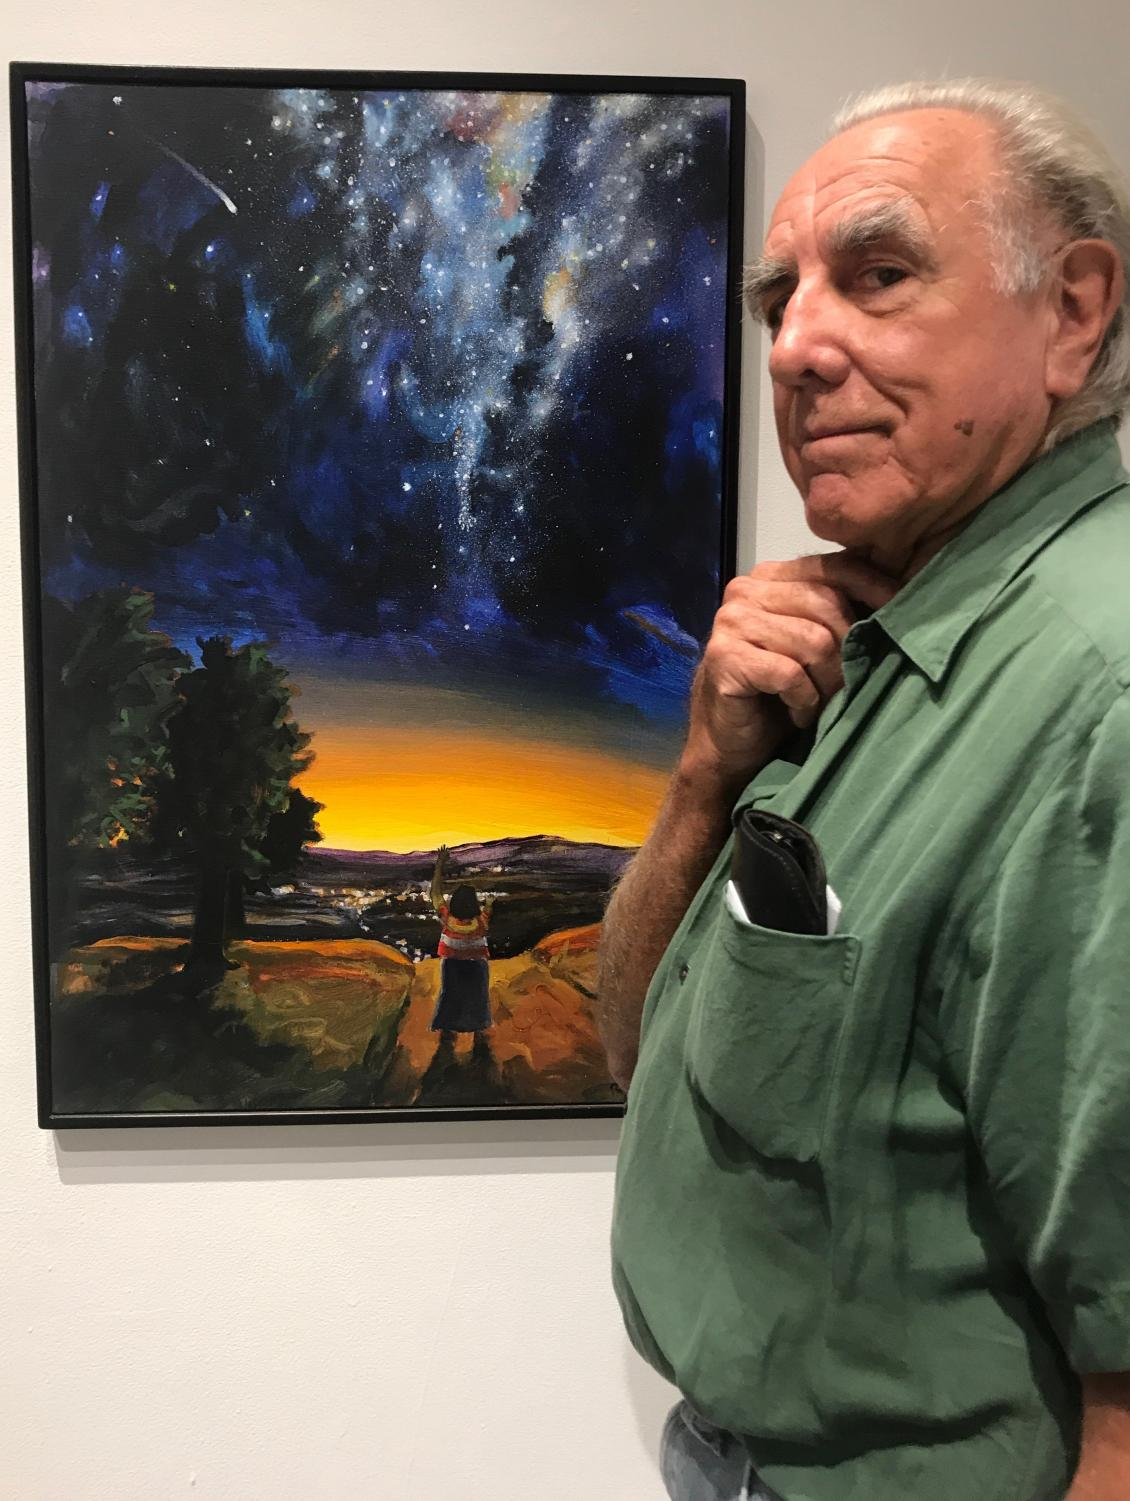 Raoul De la Sota, 81, in front of one of his favorite pieces in the art gallery, The Mexican and the Camino Photo credit: Alexa Kinoshita